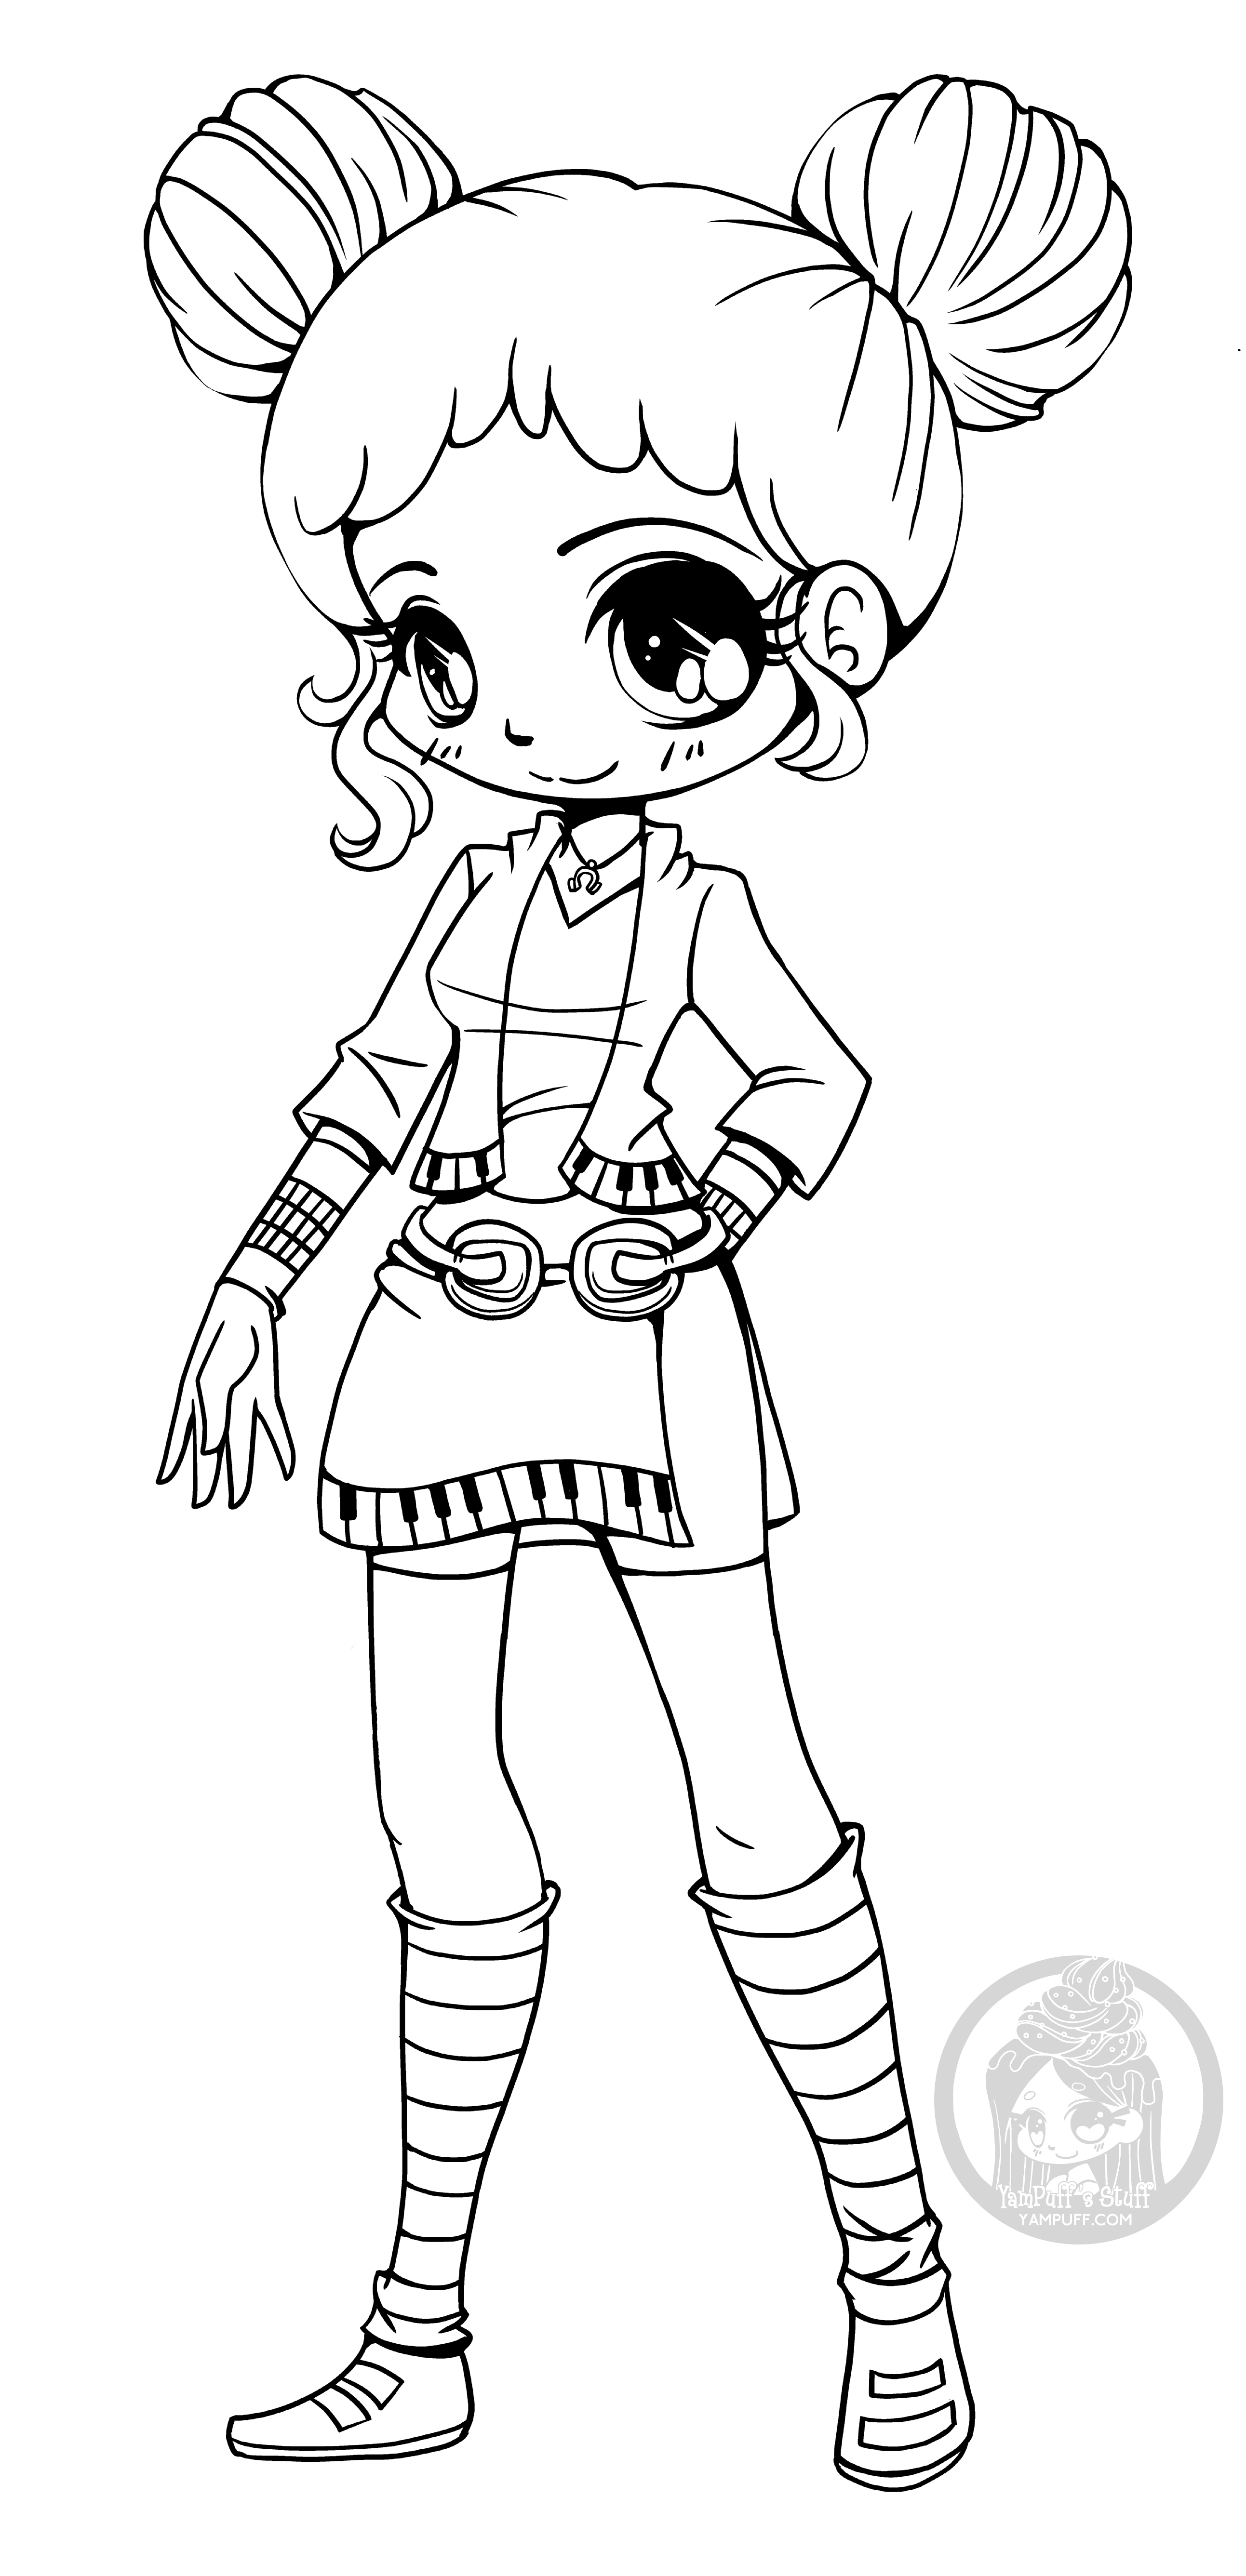 cute chibi girl coloring pages chibi coloring pages to download and print for free girl chibi pages cute coloring